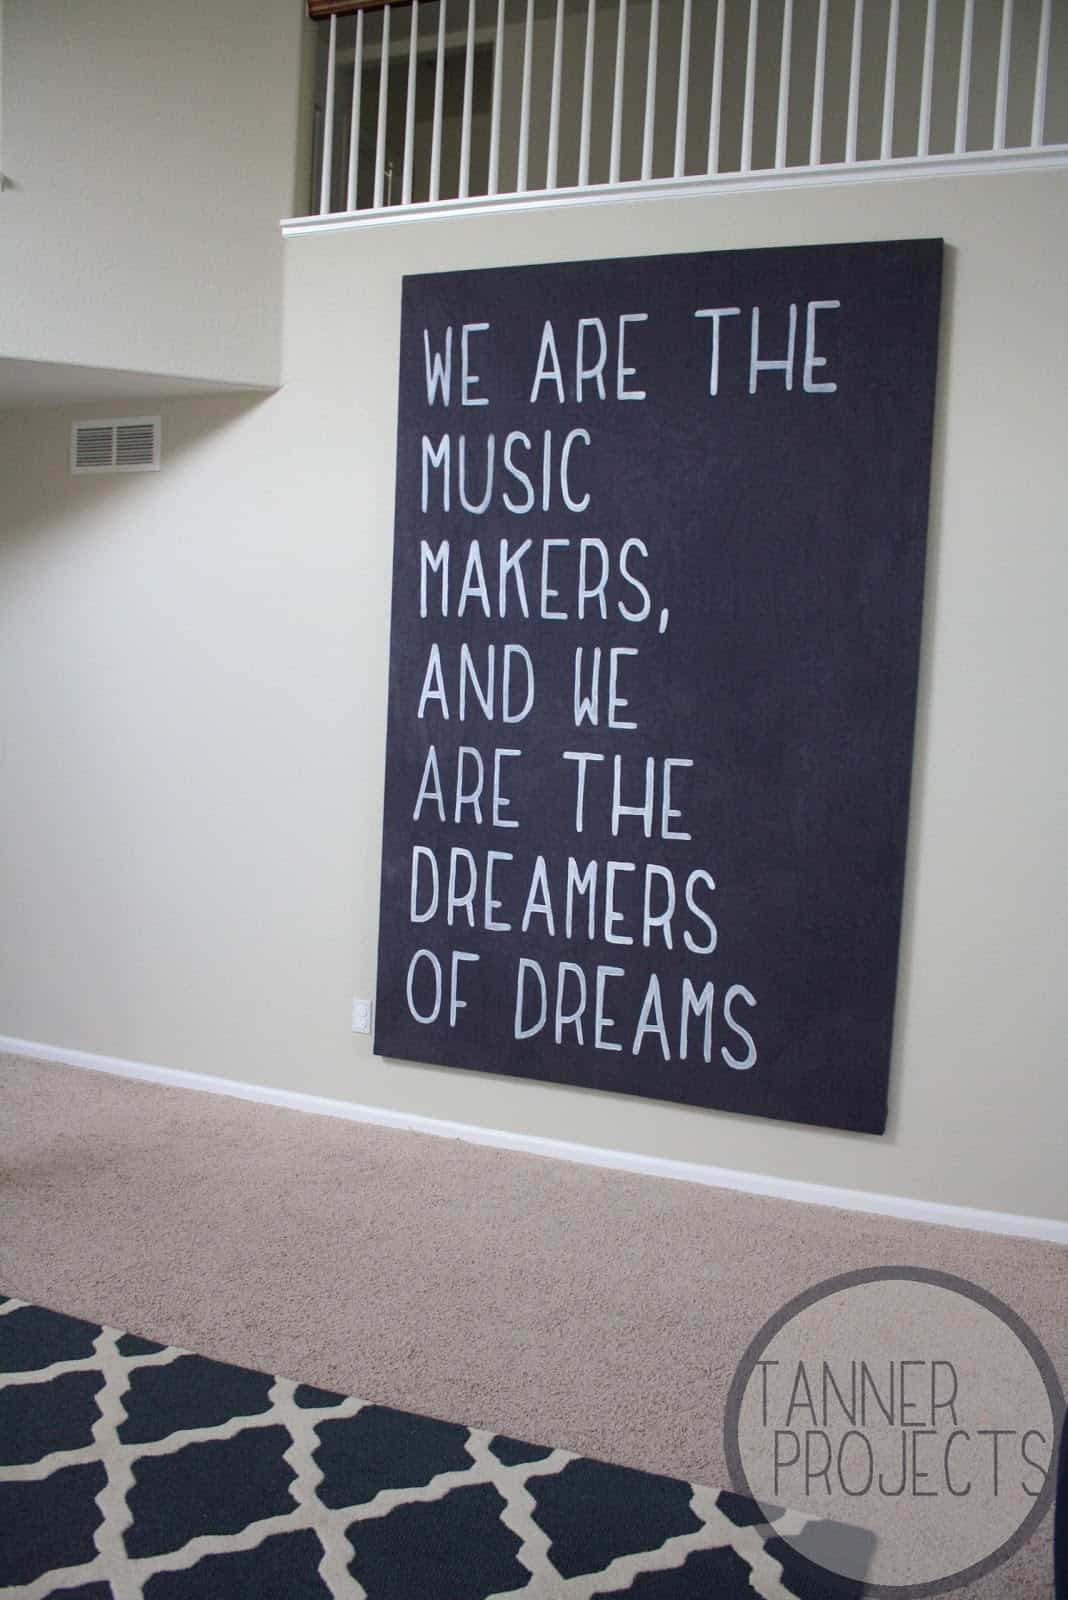 Big quote on dyed drop cloth canvas